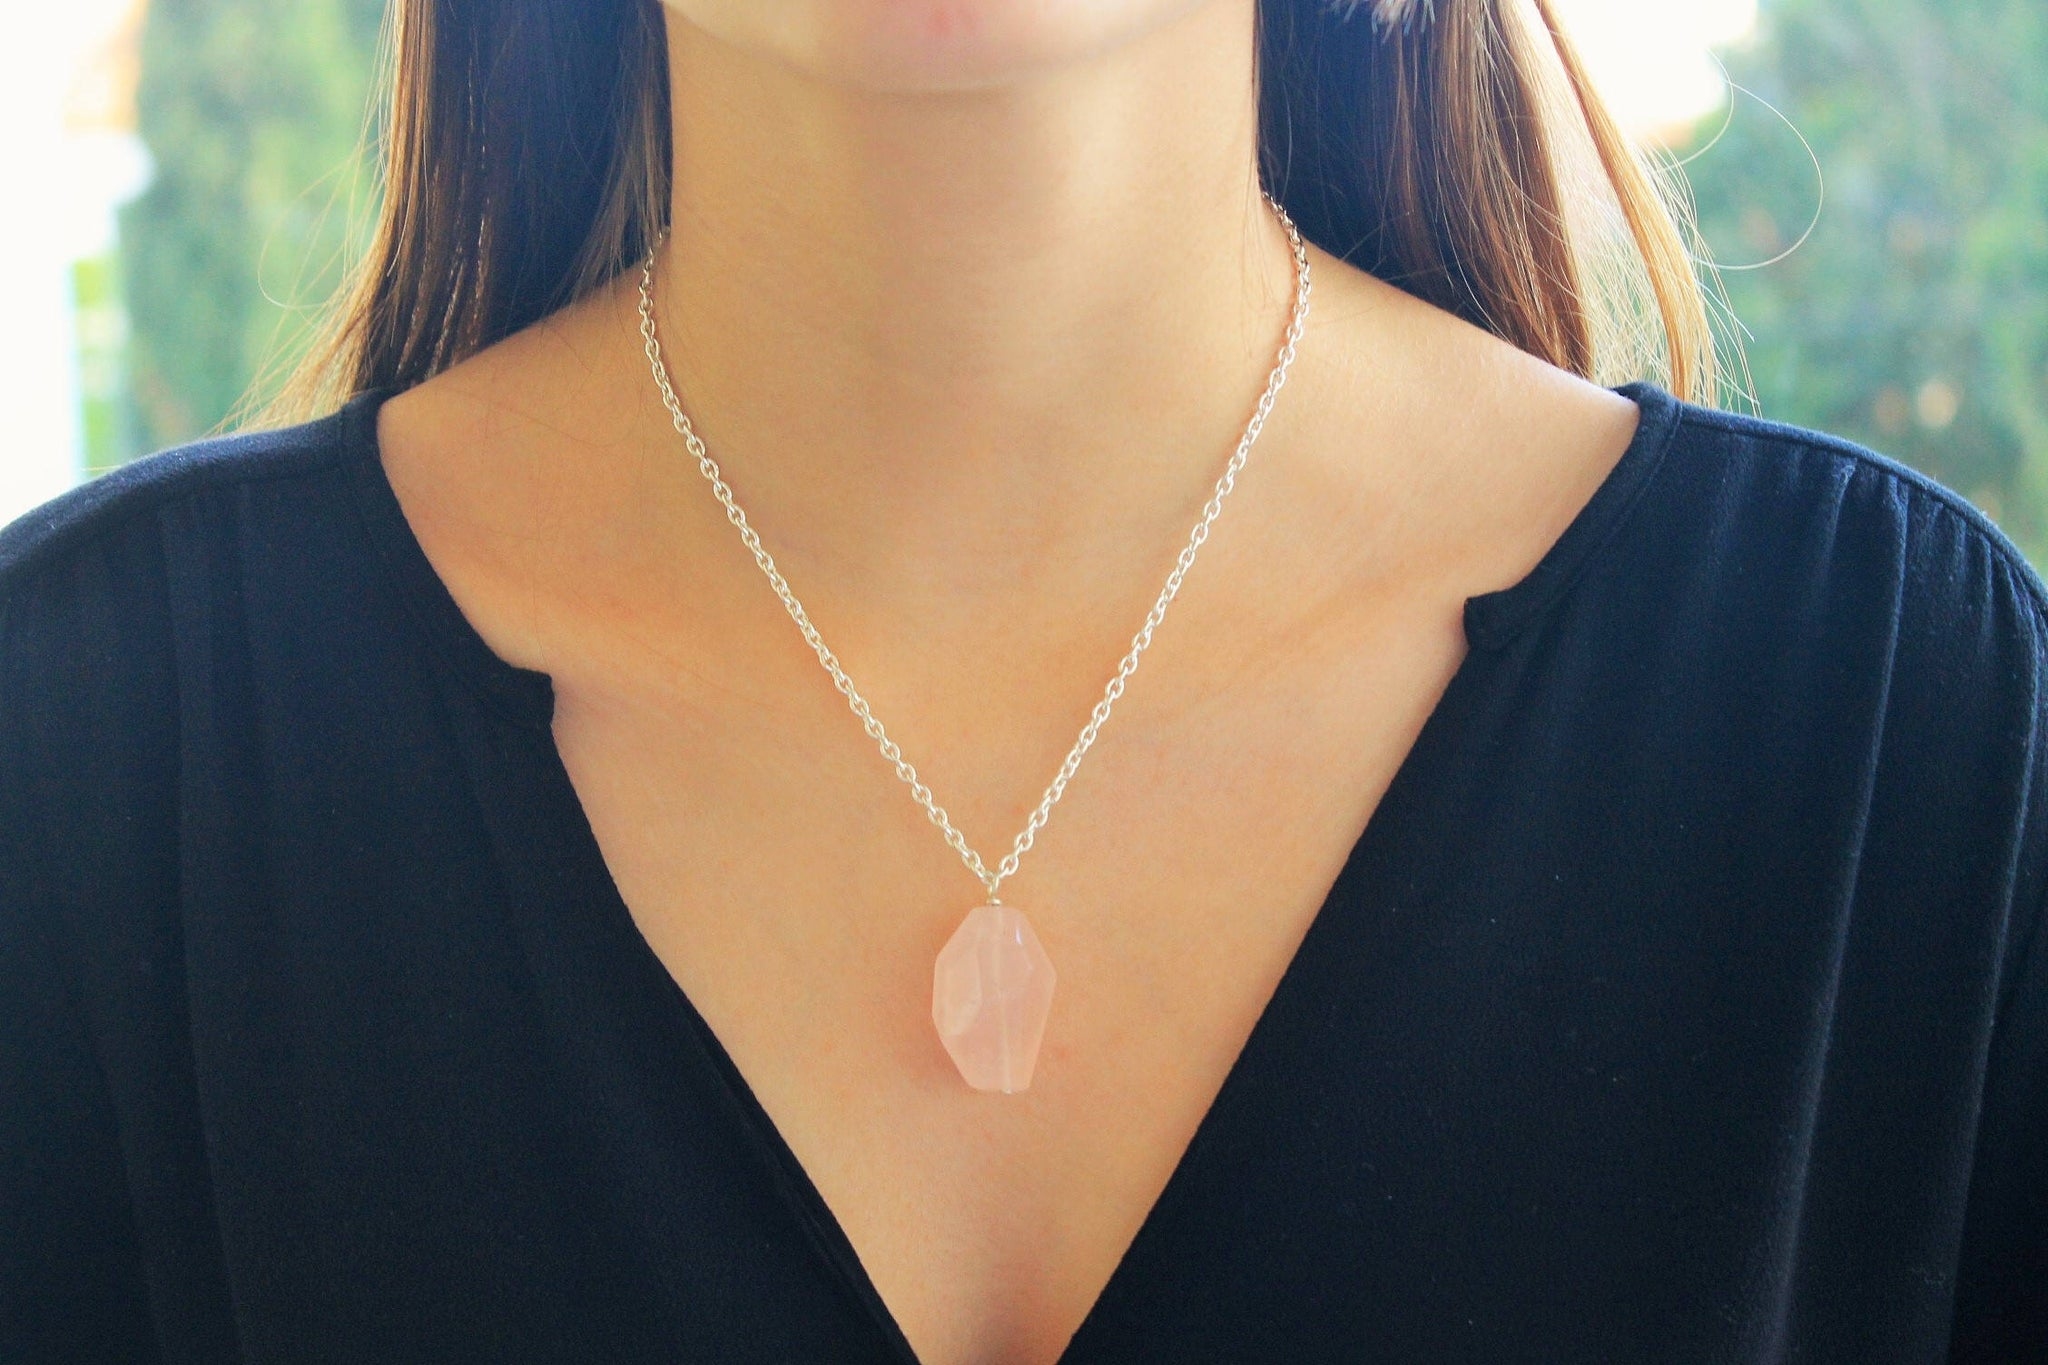 Rose quartz pendant and silver chain necklace